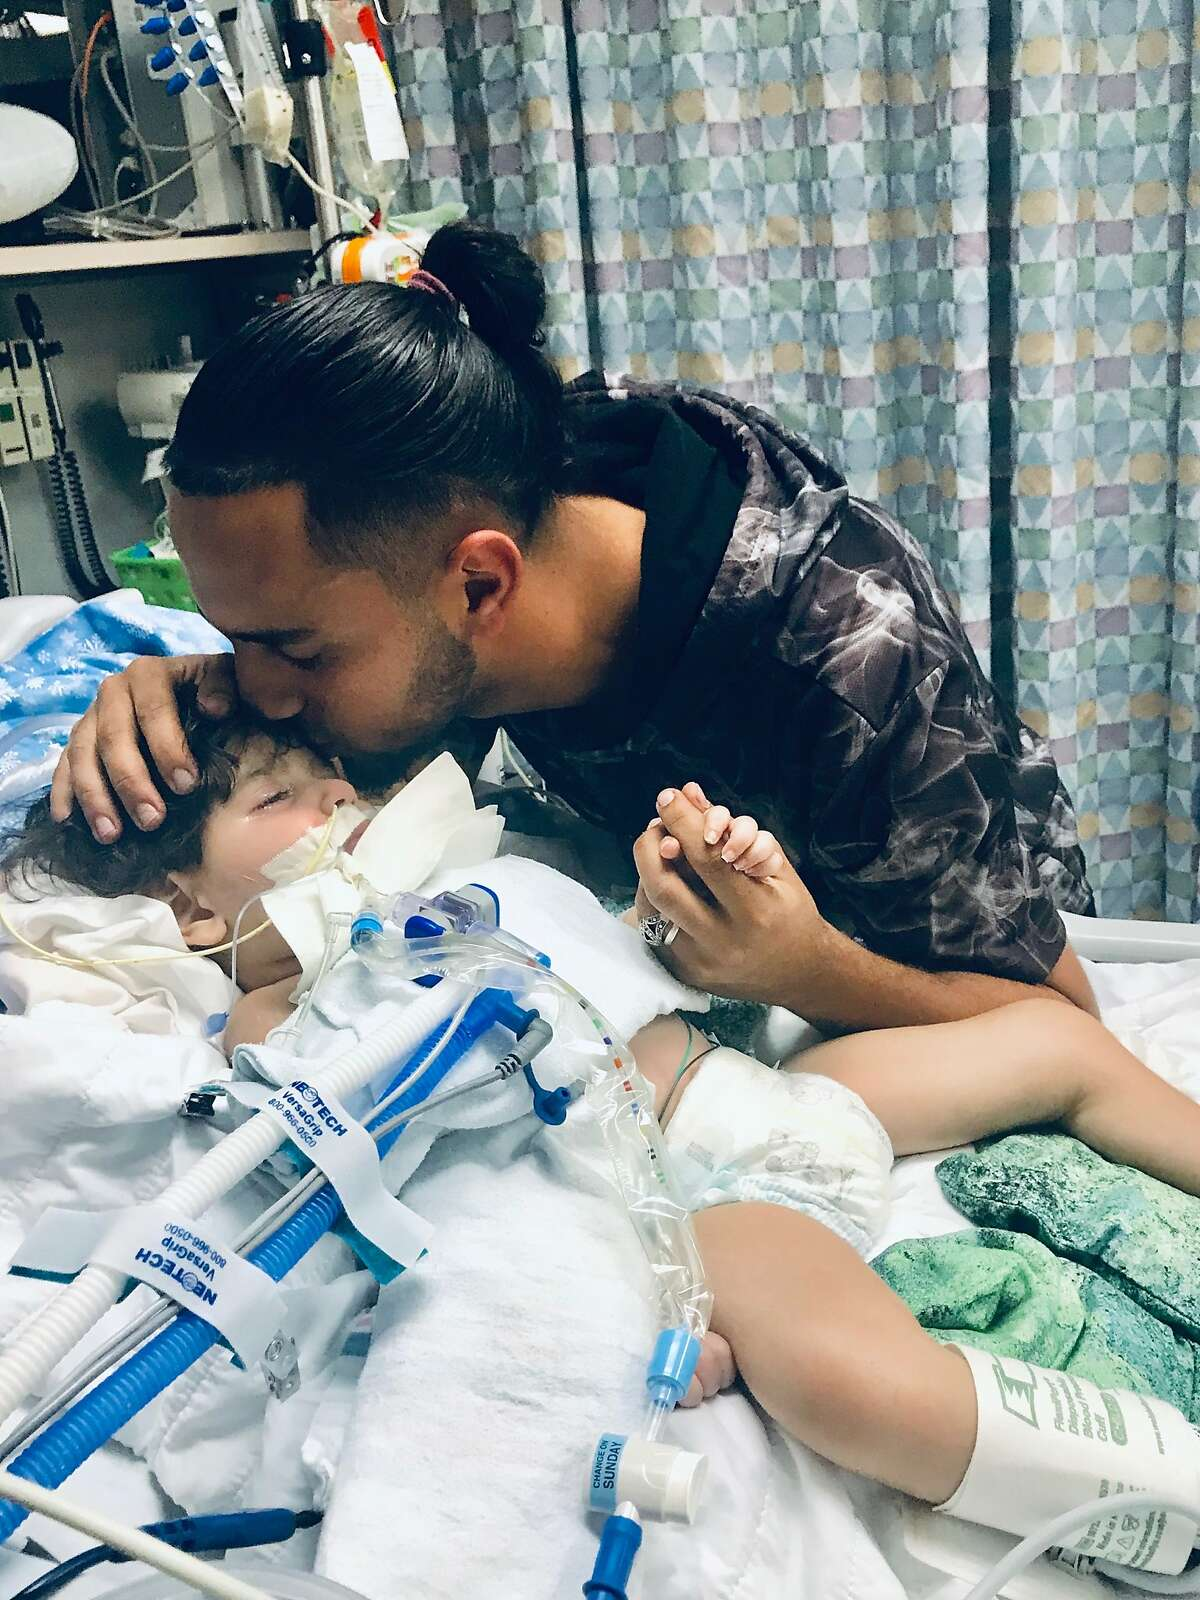 Ali Hassan, of Stockton, kisses his 2-year-old son Abdullah at UCSF Benioff Children's Hospital in Oakland. The child is on life support while his Yemeni mother Shaima Swileh is stuck in Egypt, unable to enter the U.S. because of the Trump administration's so-called Muslim ban.